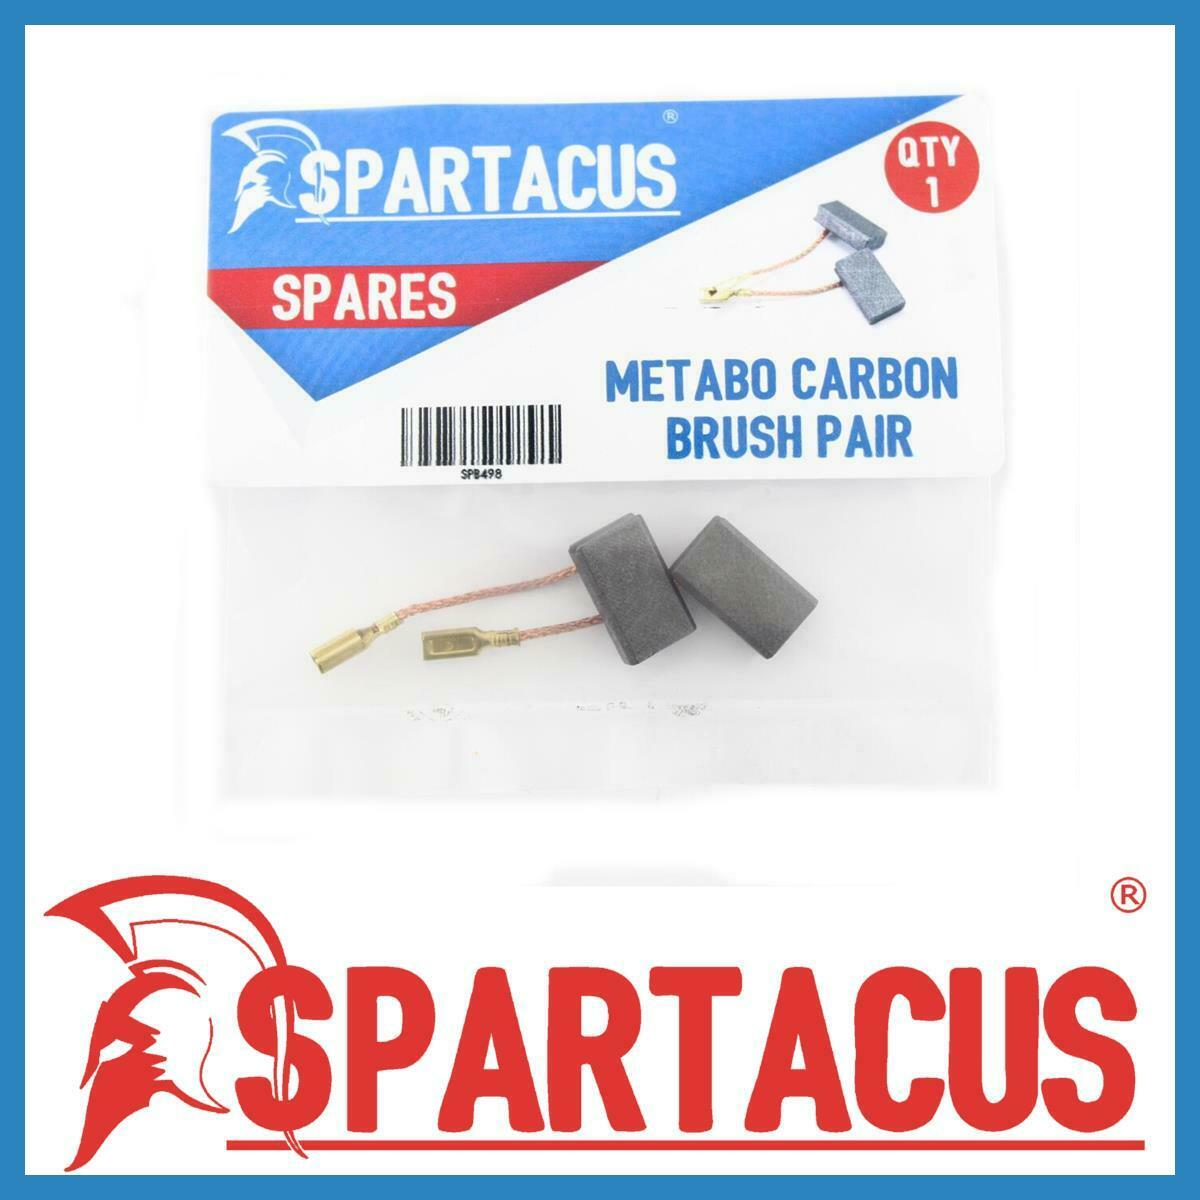 Spartacus Spb498 Carbon Brush Pair For Metabo W7 115 100 Grinders Cordless Disc Grinder Mm Hitachi G 18dl 1 Of 1free Shipping